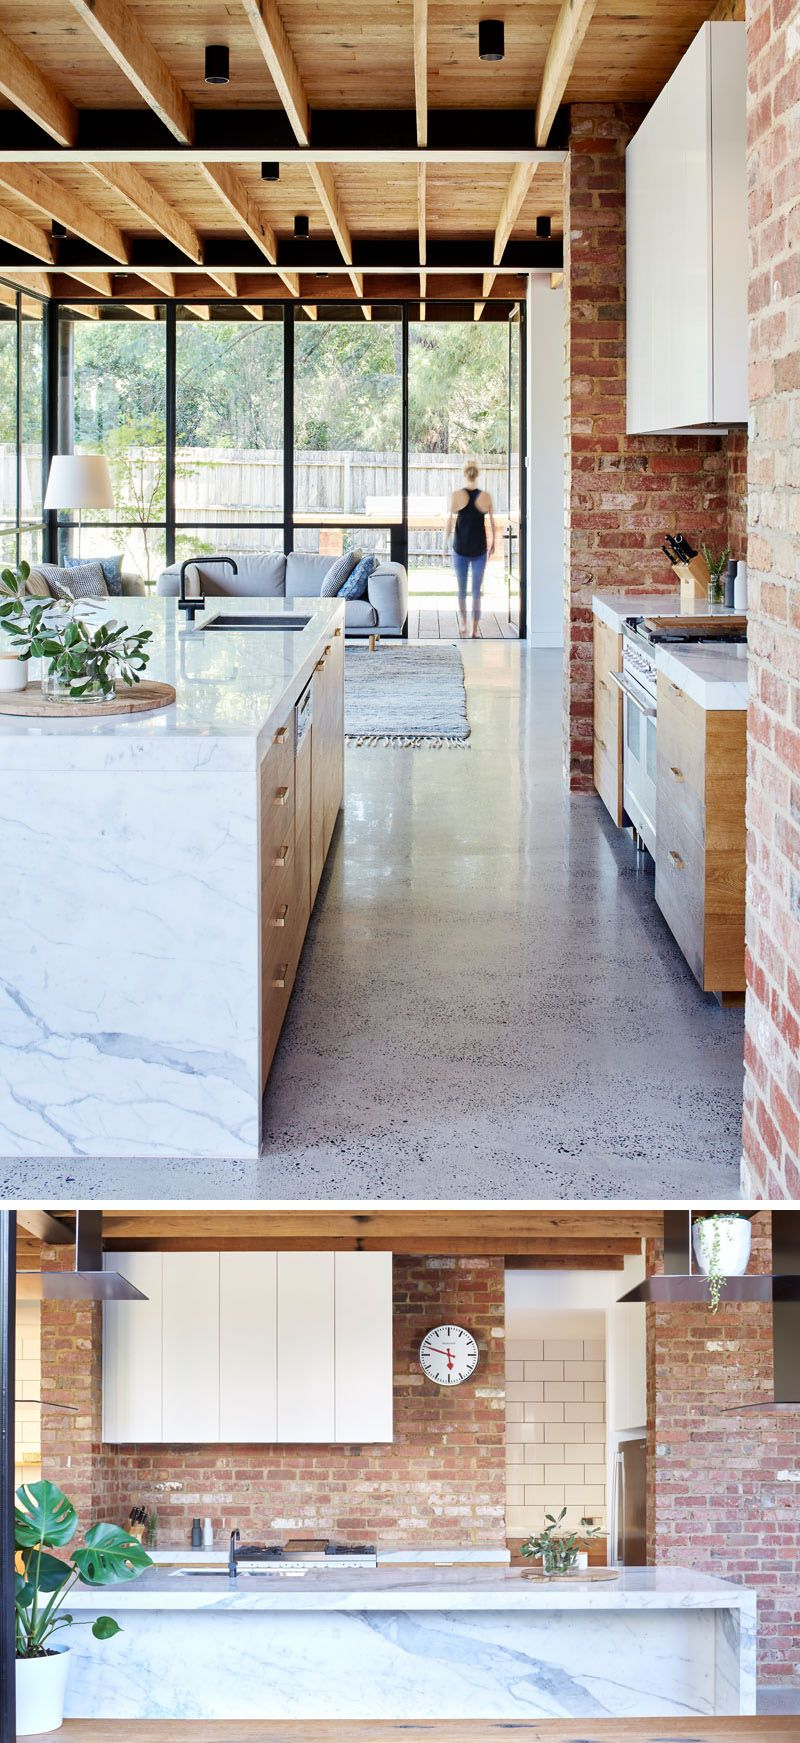 Kitchen window ledge  the park house by tenfiftyfive  countertops bricks and marbles